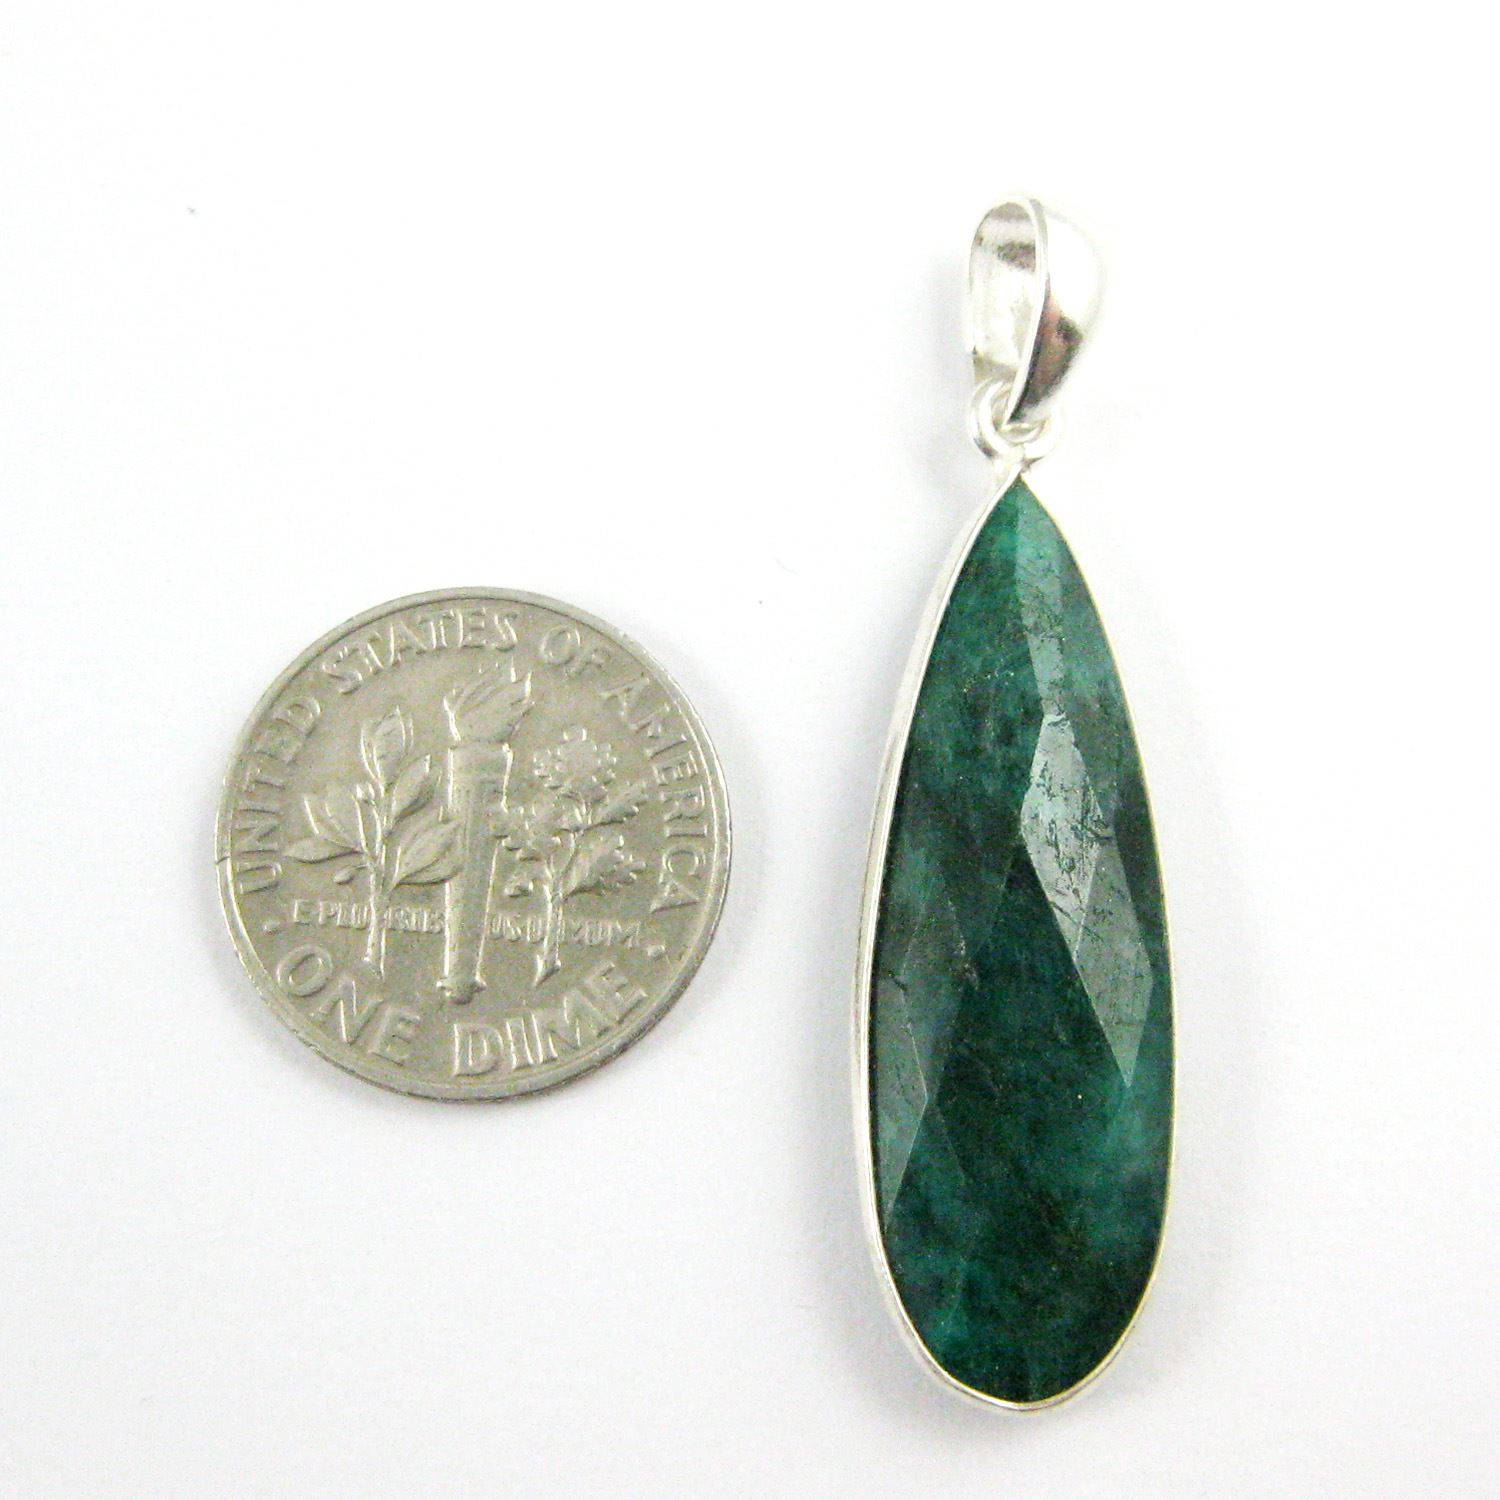 Bezel Gemstone Pendant with Bail - Sterling Silver Elongated Teardrpo Gem Pendant - Ready for Necklace - 40mm -Emerald Dyed